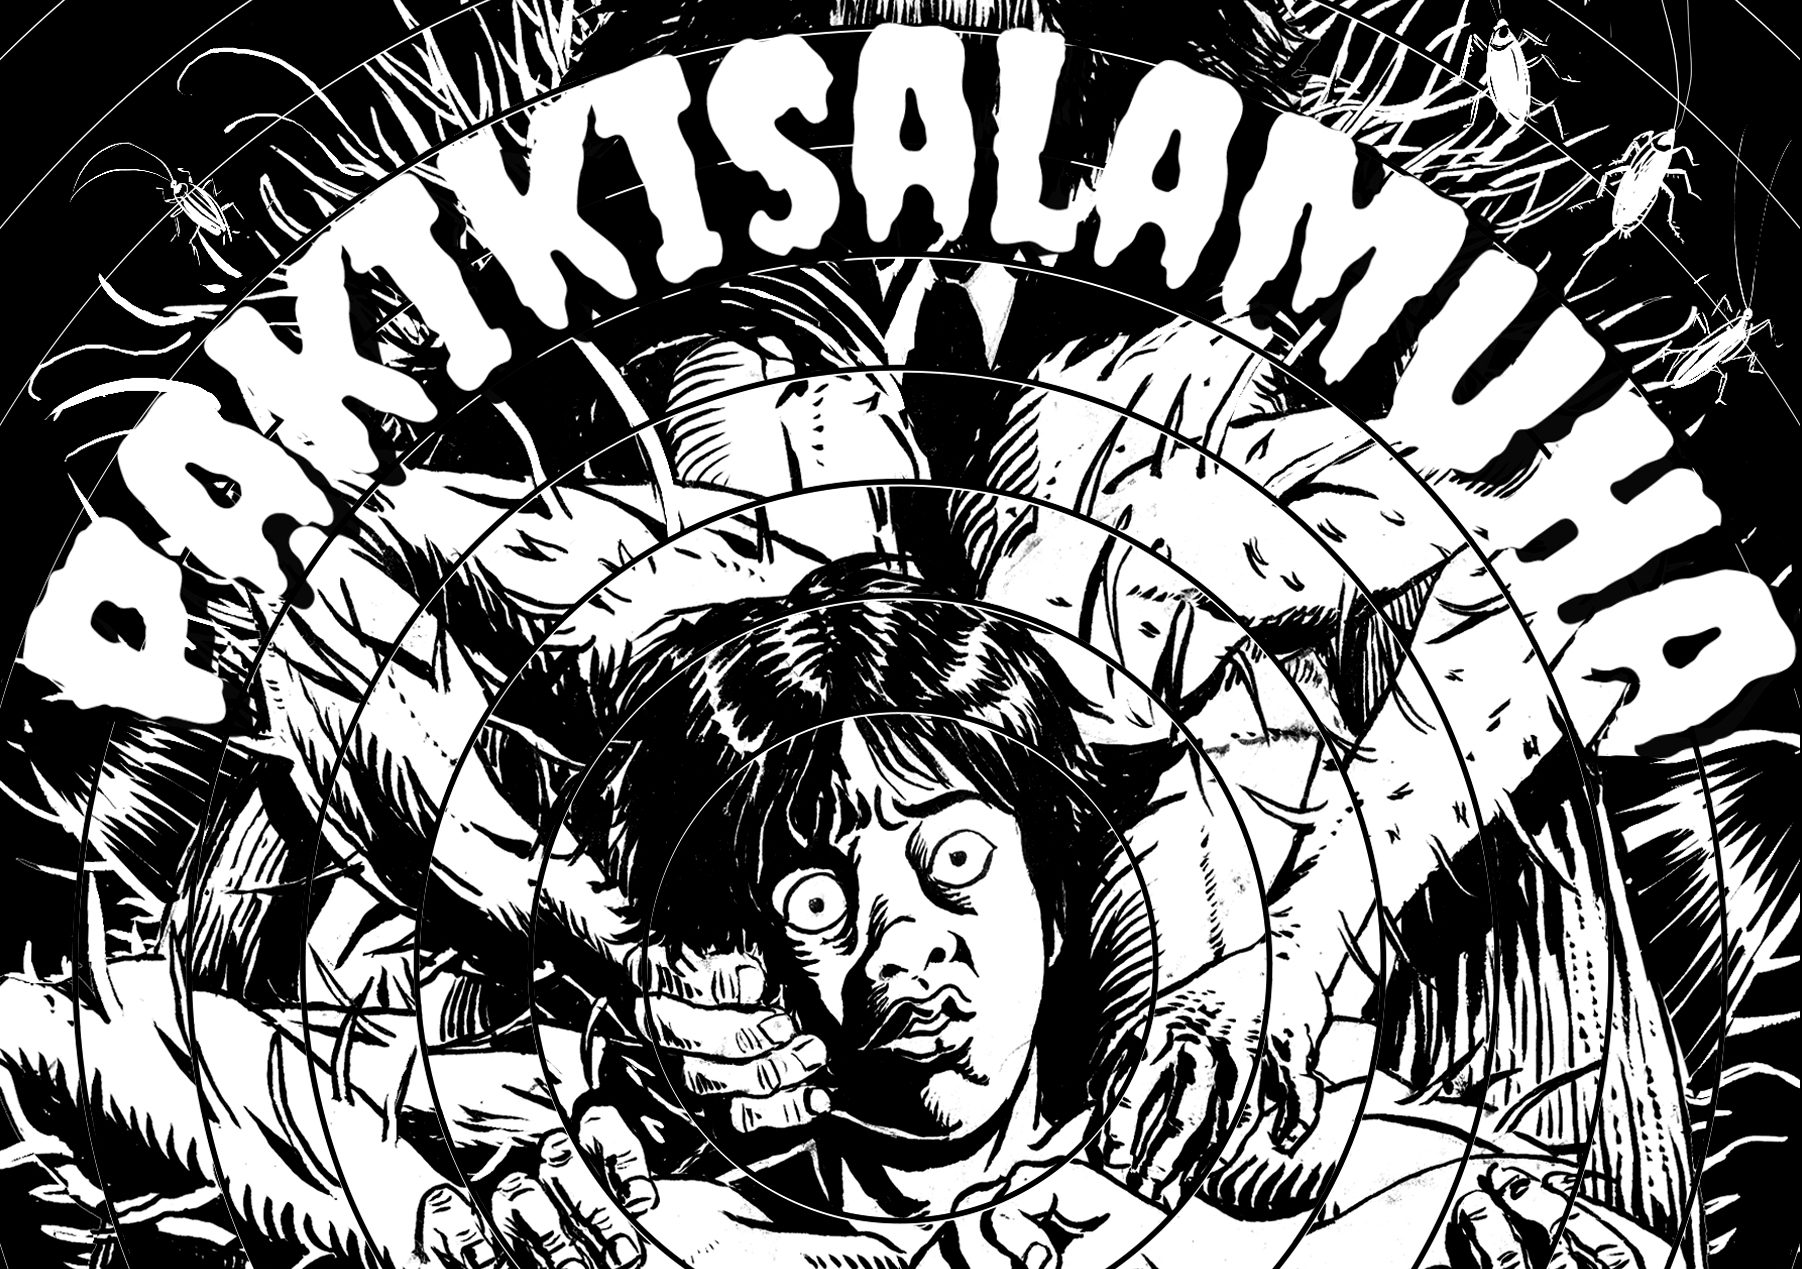 Mervin Malonzo's komiks aren't like your grandpa's old strips